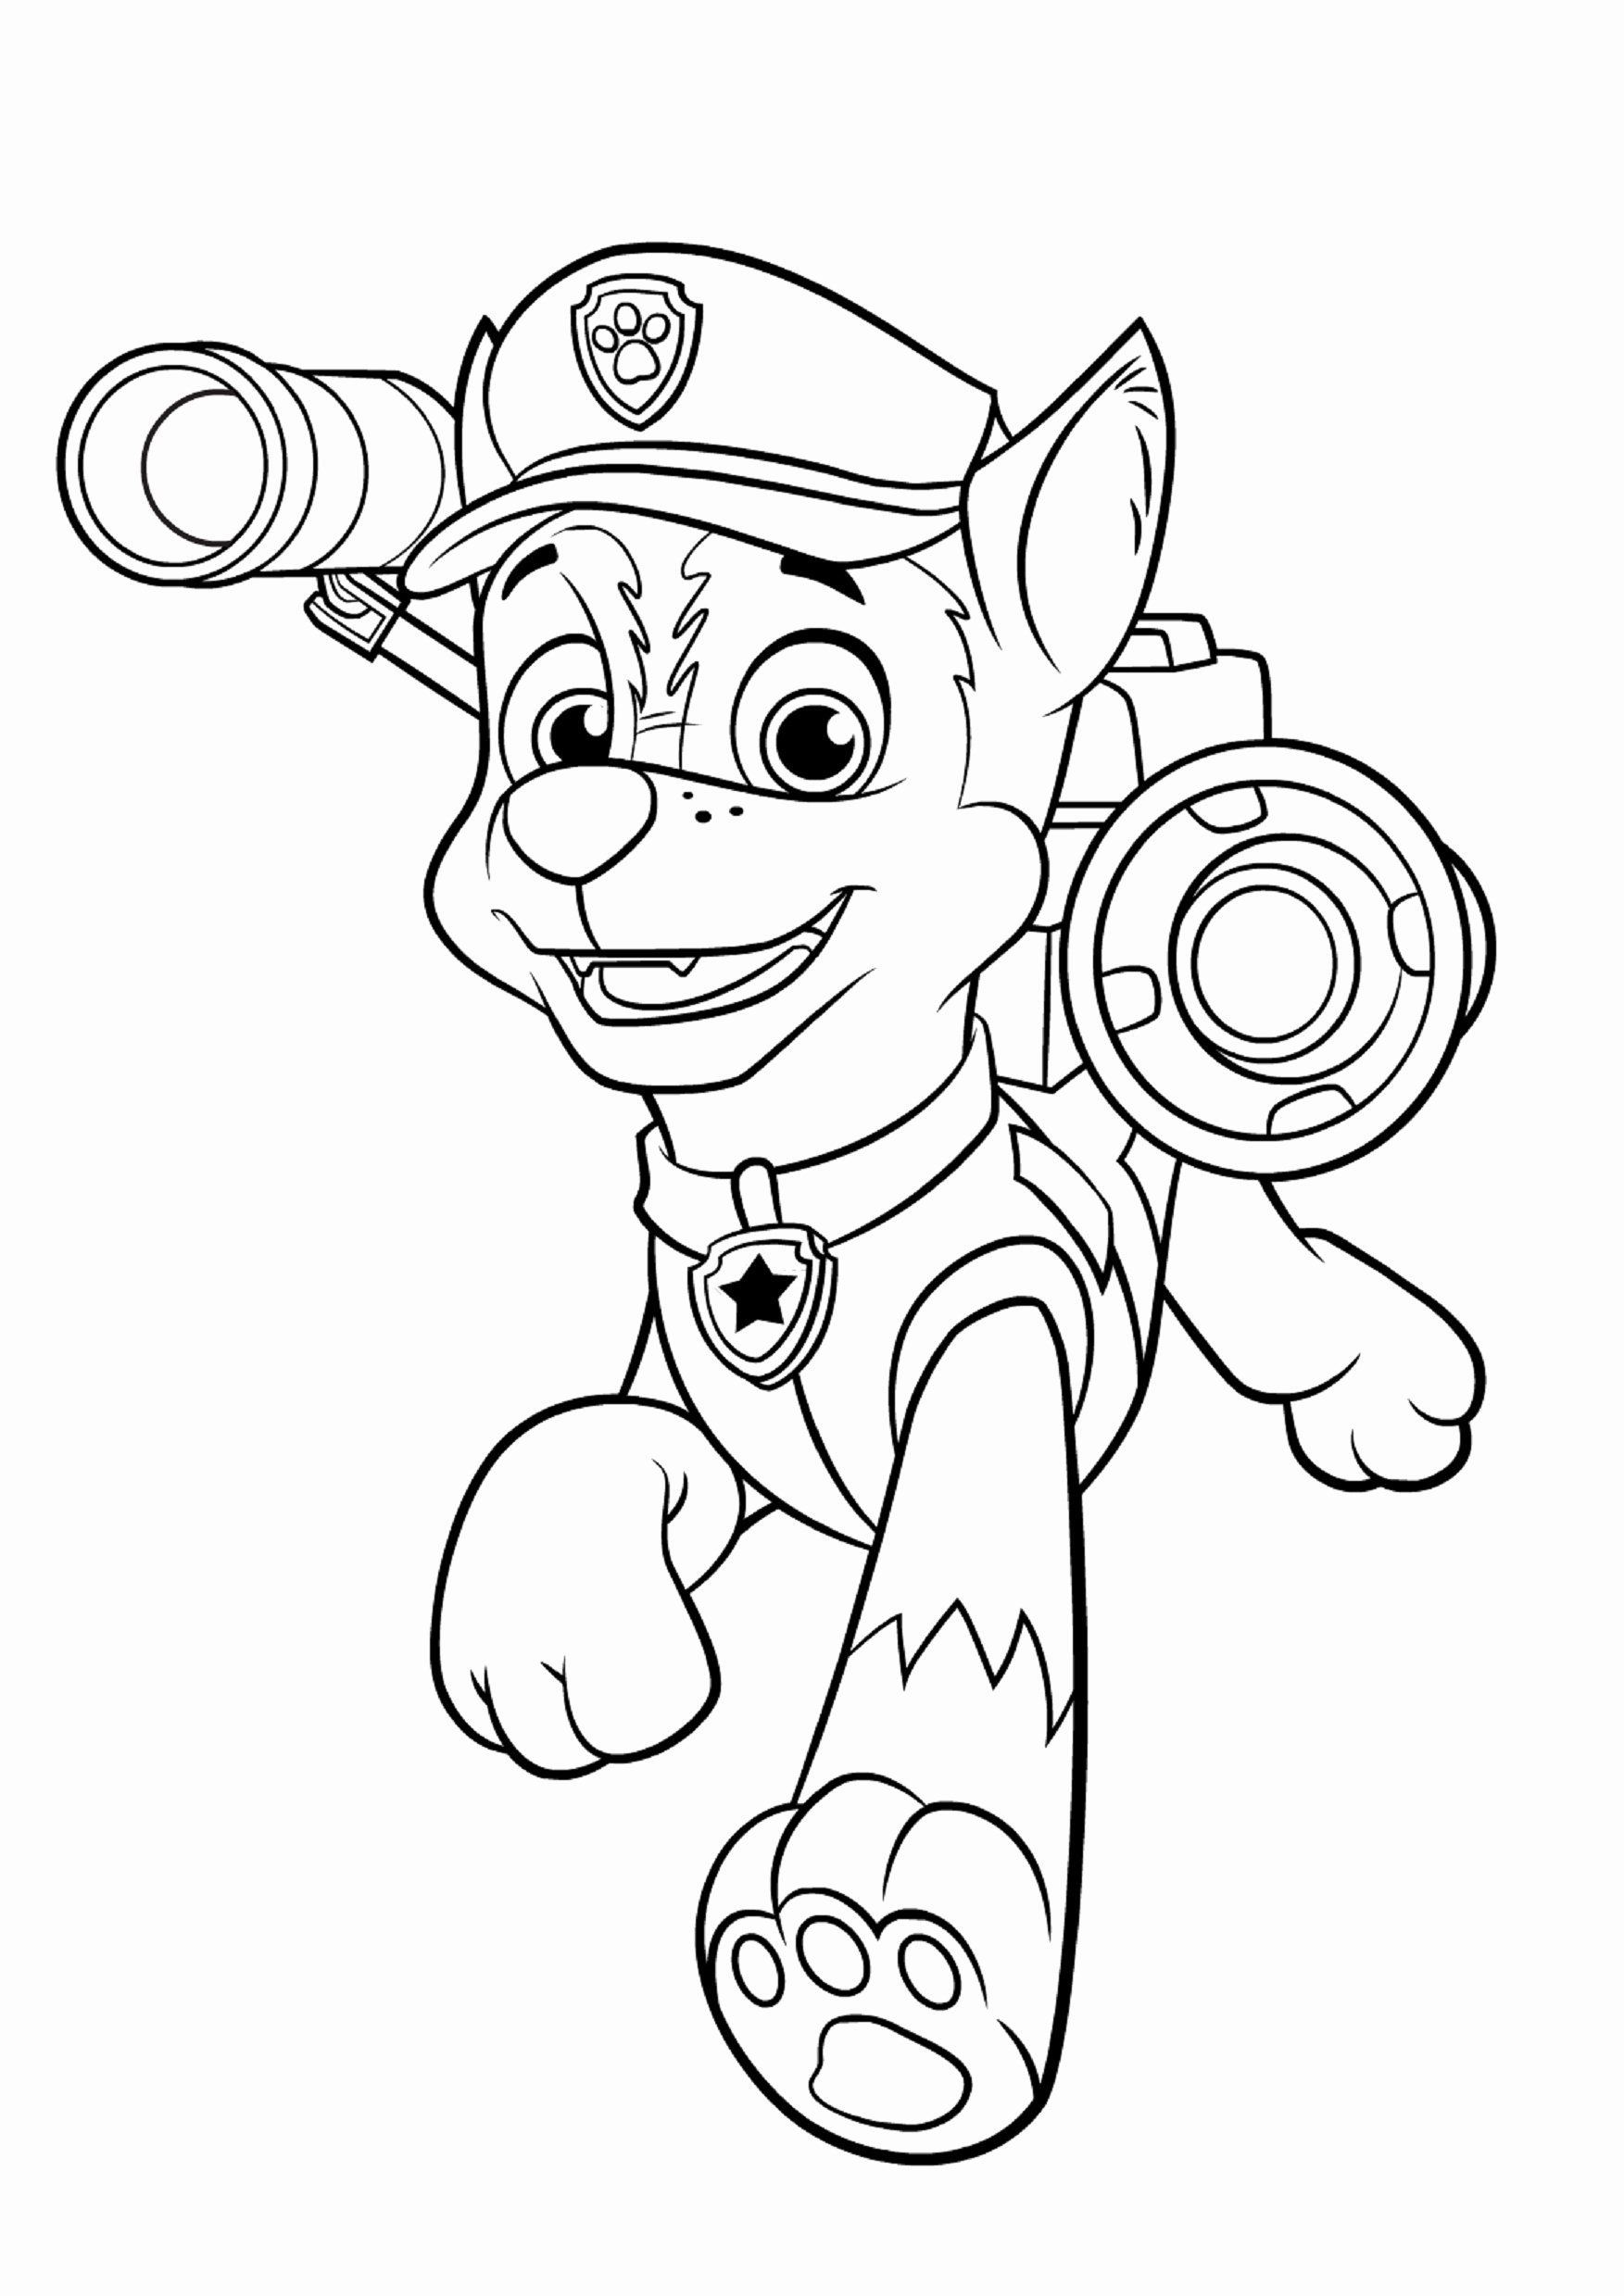 paw patrol coloring lovely to and print for fre train sheet shark writing check animation coloring pages Chase Coloring Page